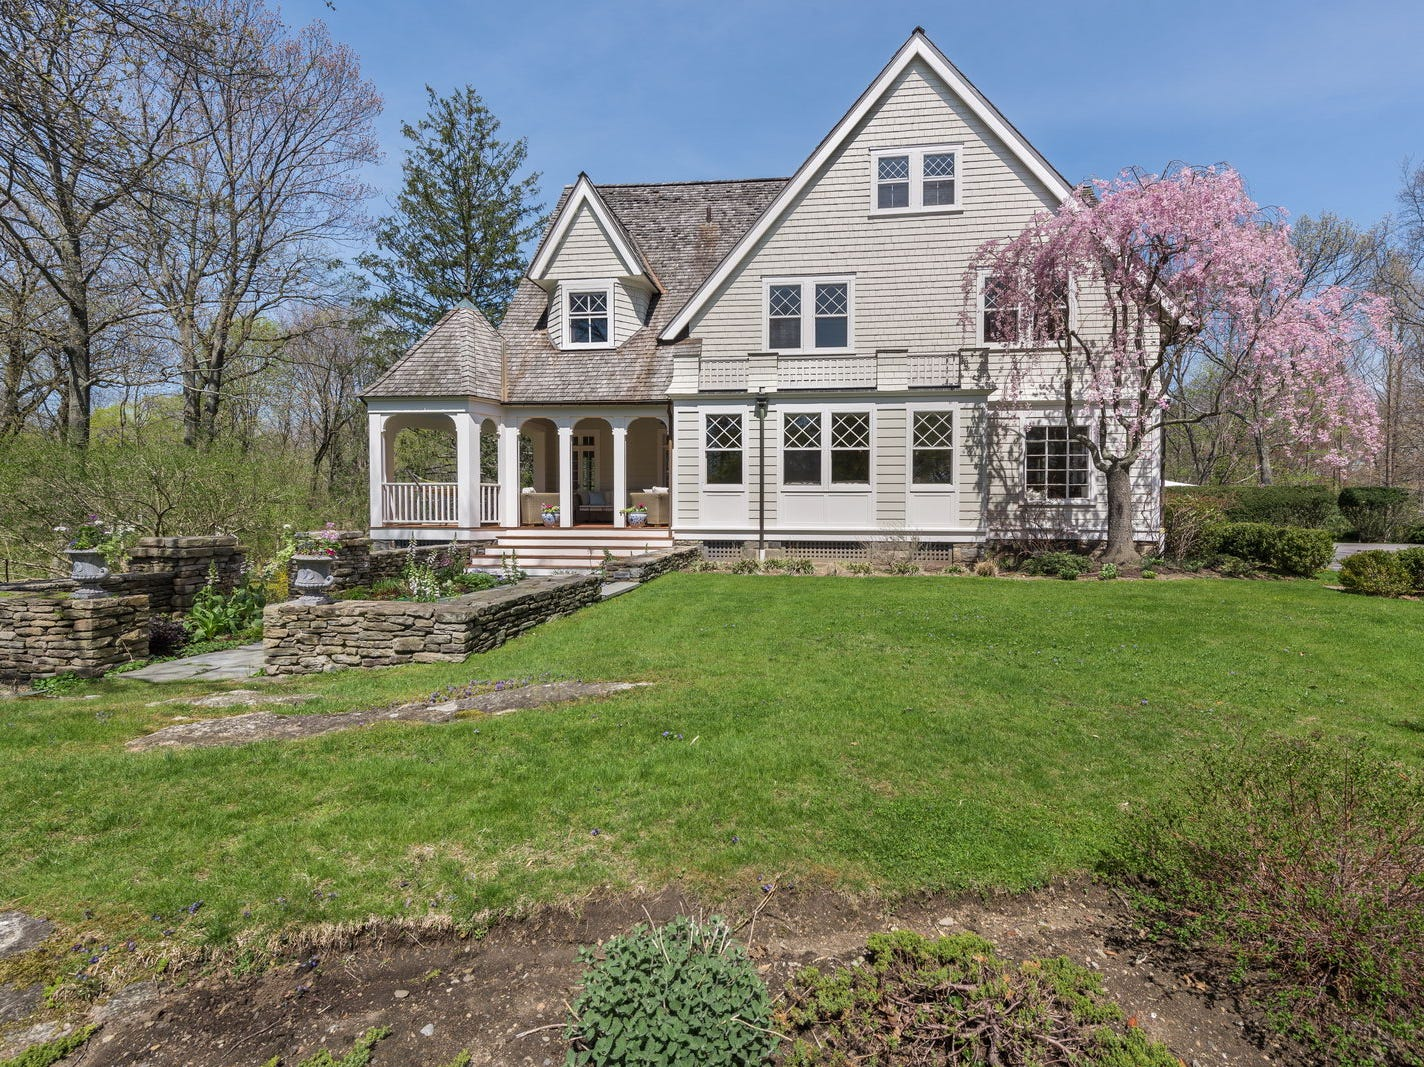 Famed aviation pioneer Ruth Rowland Nichols lived in this Rye home, now on the market.